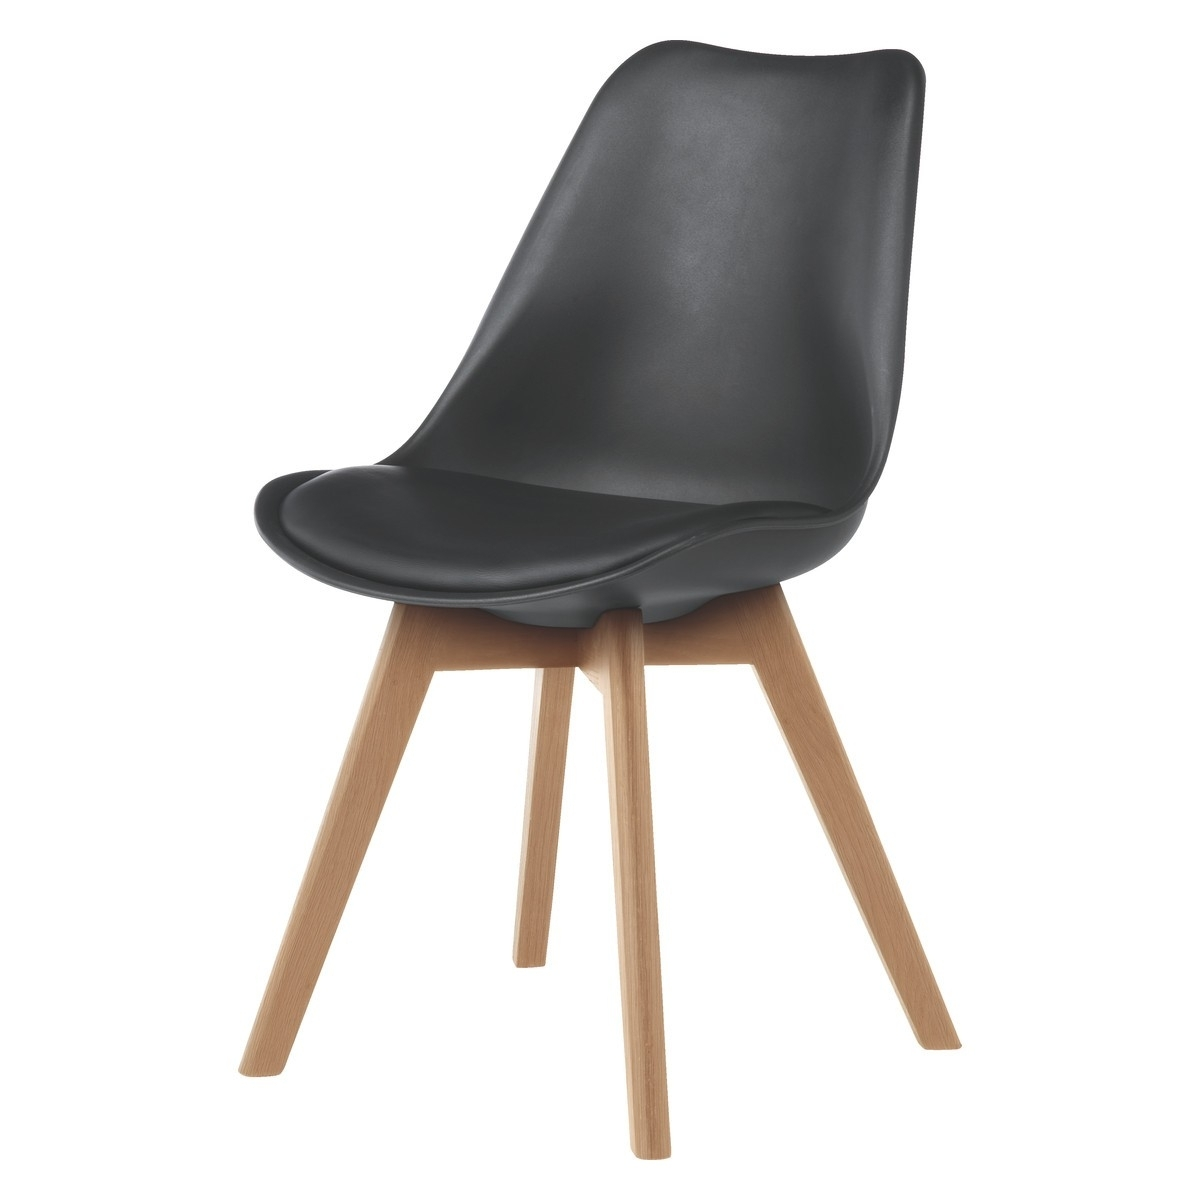 Buy Now At Habitat Uk Inside Black Dining Chairs (View 1 of 25)